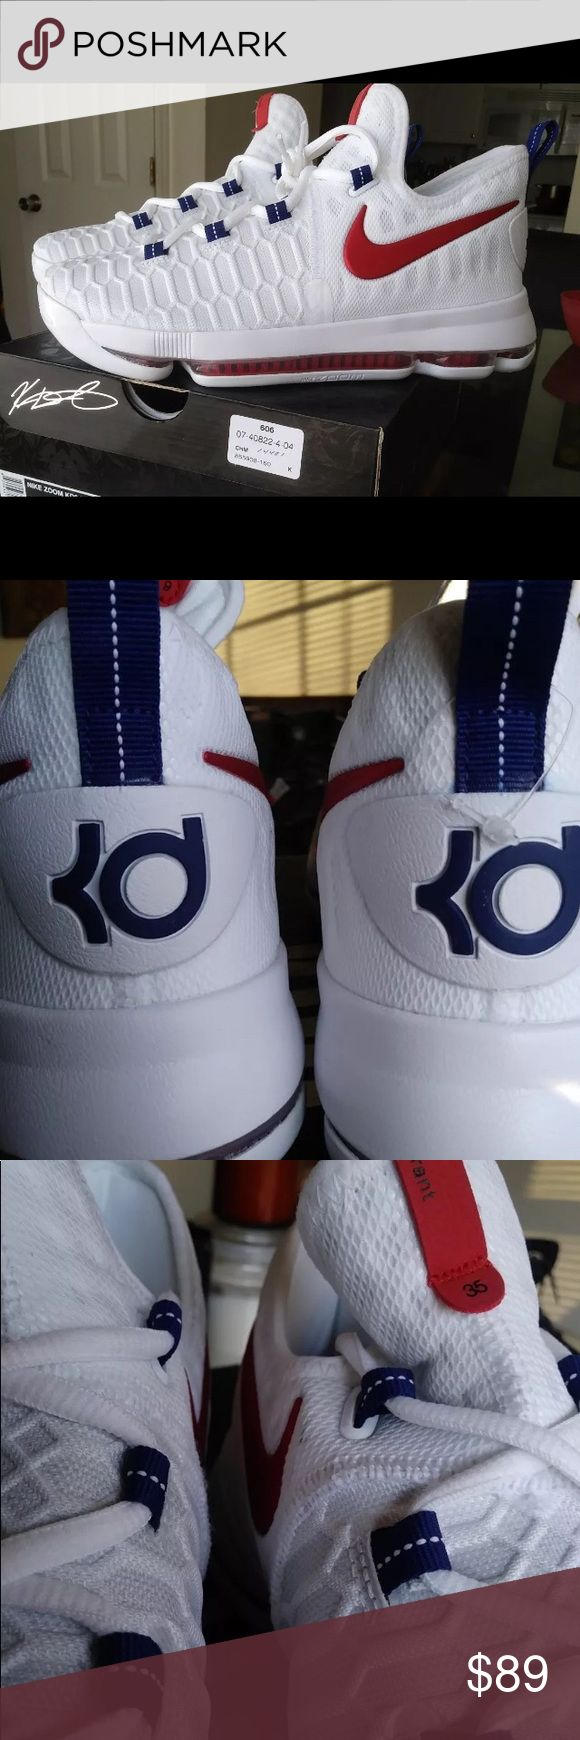 New KD9 Kevin Durant Olympic Red White Blue Zoom 🎉New KD9🎉  Size 6Y fits 7.5 or 8 in women's   Very great looking basketball shoes with amazing comfort. Don't end up paying those high prices when you can get them for an affordable price.  🚫No refunds 🚫No low ballers 💯Authentic   NMD, AVD, EQT, Mastermind, Primeknit, tubular, Zx women's running shoes, women's basketball soccer. Girly shoes NMD adidas, Jordan 1, Jordan 2, Jordan 3, Jordan 4, Jordan 5, Jordan 6, Jordan 7, Jordan 8, Jordan…